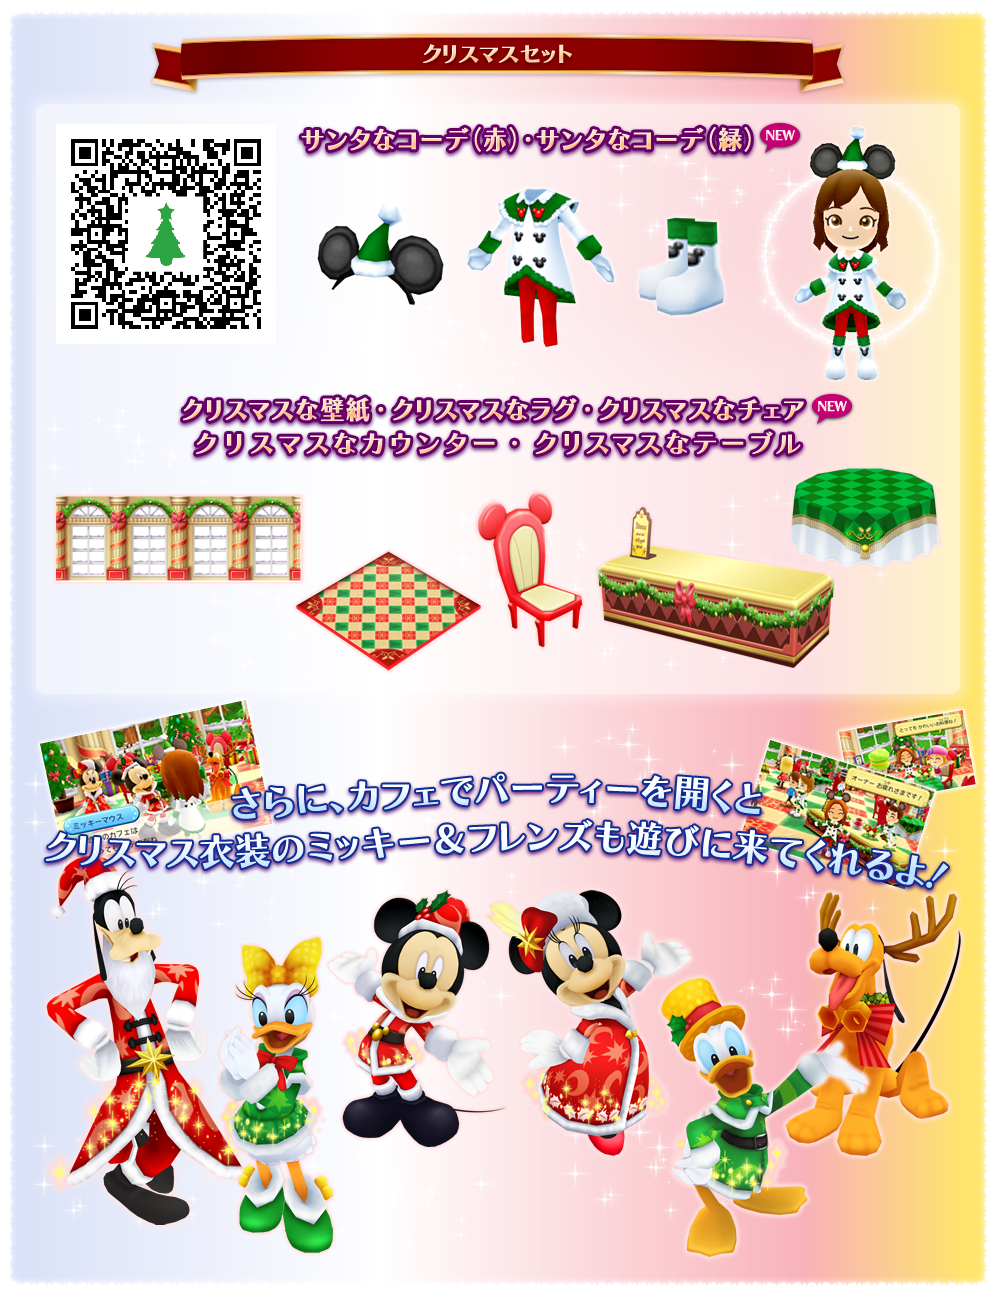 Animal Crossing New Leaf Wallpaper Qr Jp News Dec 22 Puzzle Amp Dragons X Sega 3d Classics